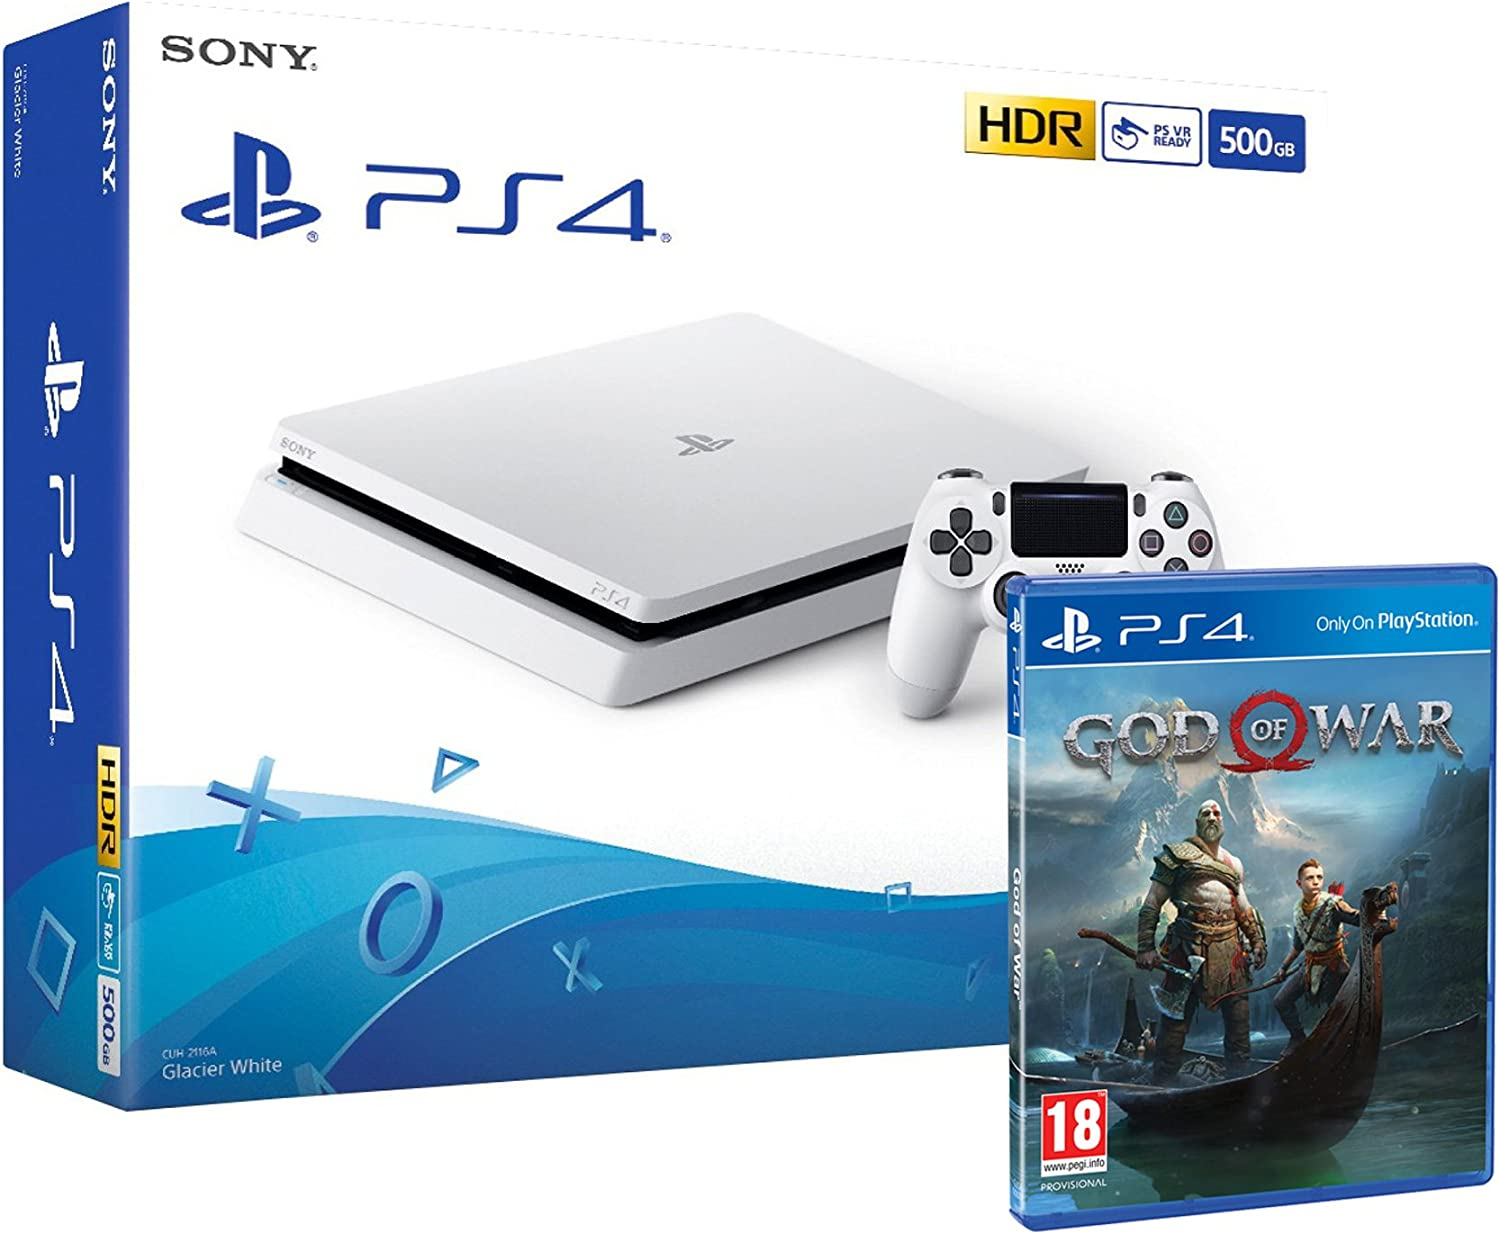 PS4 Slim 500Gb Blanca Playstation 4 Consola + God Of War: Amazon.es: Videojuegos